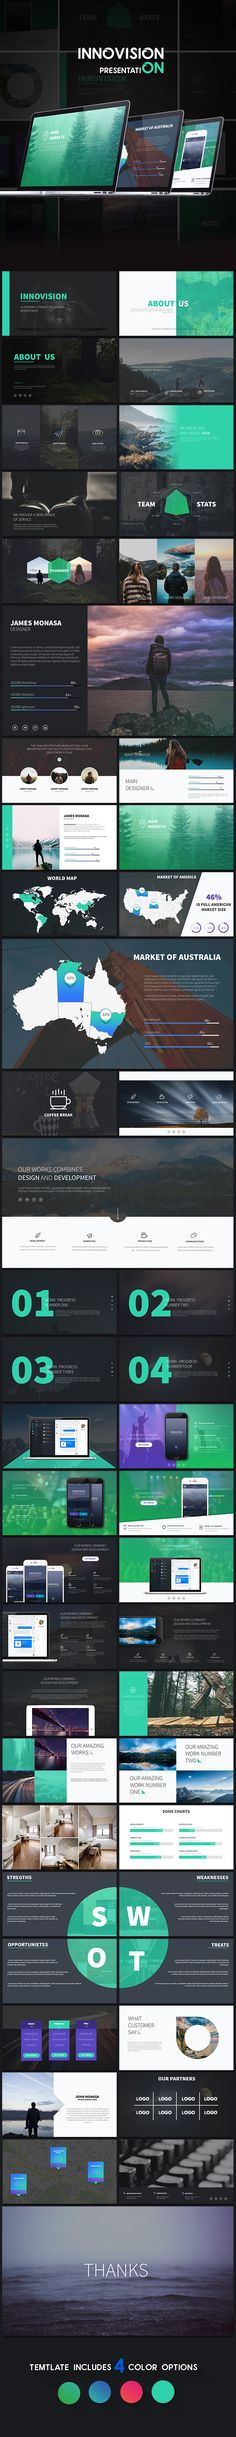 23 Ideas Design Presentation Keynote Business For 2019 Layout Design, Web Design, Slide Design, Web Layout, Design Presentation, Business Presentation, Presentation Templates, Slideshow Presentation, Presentation Slides